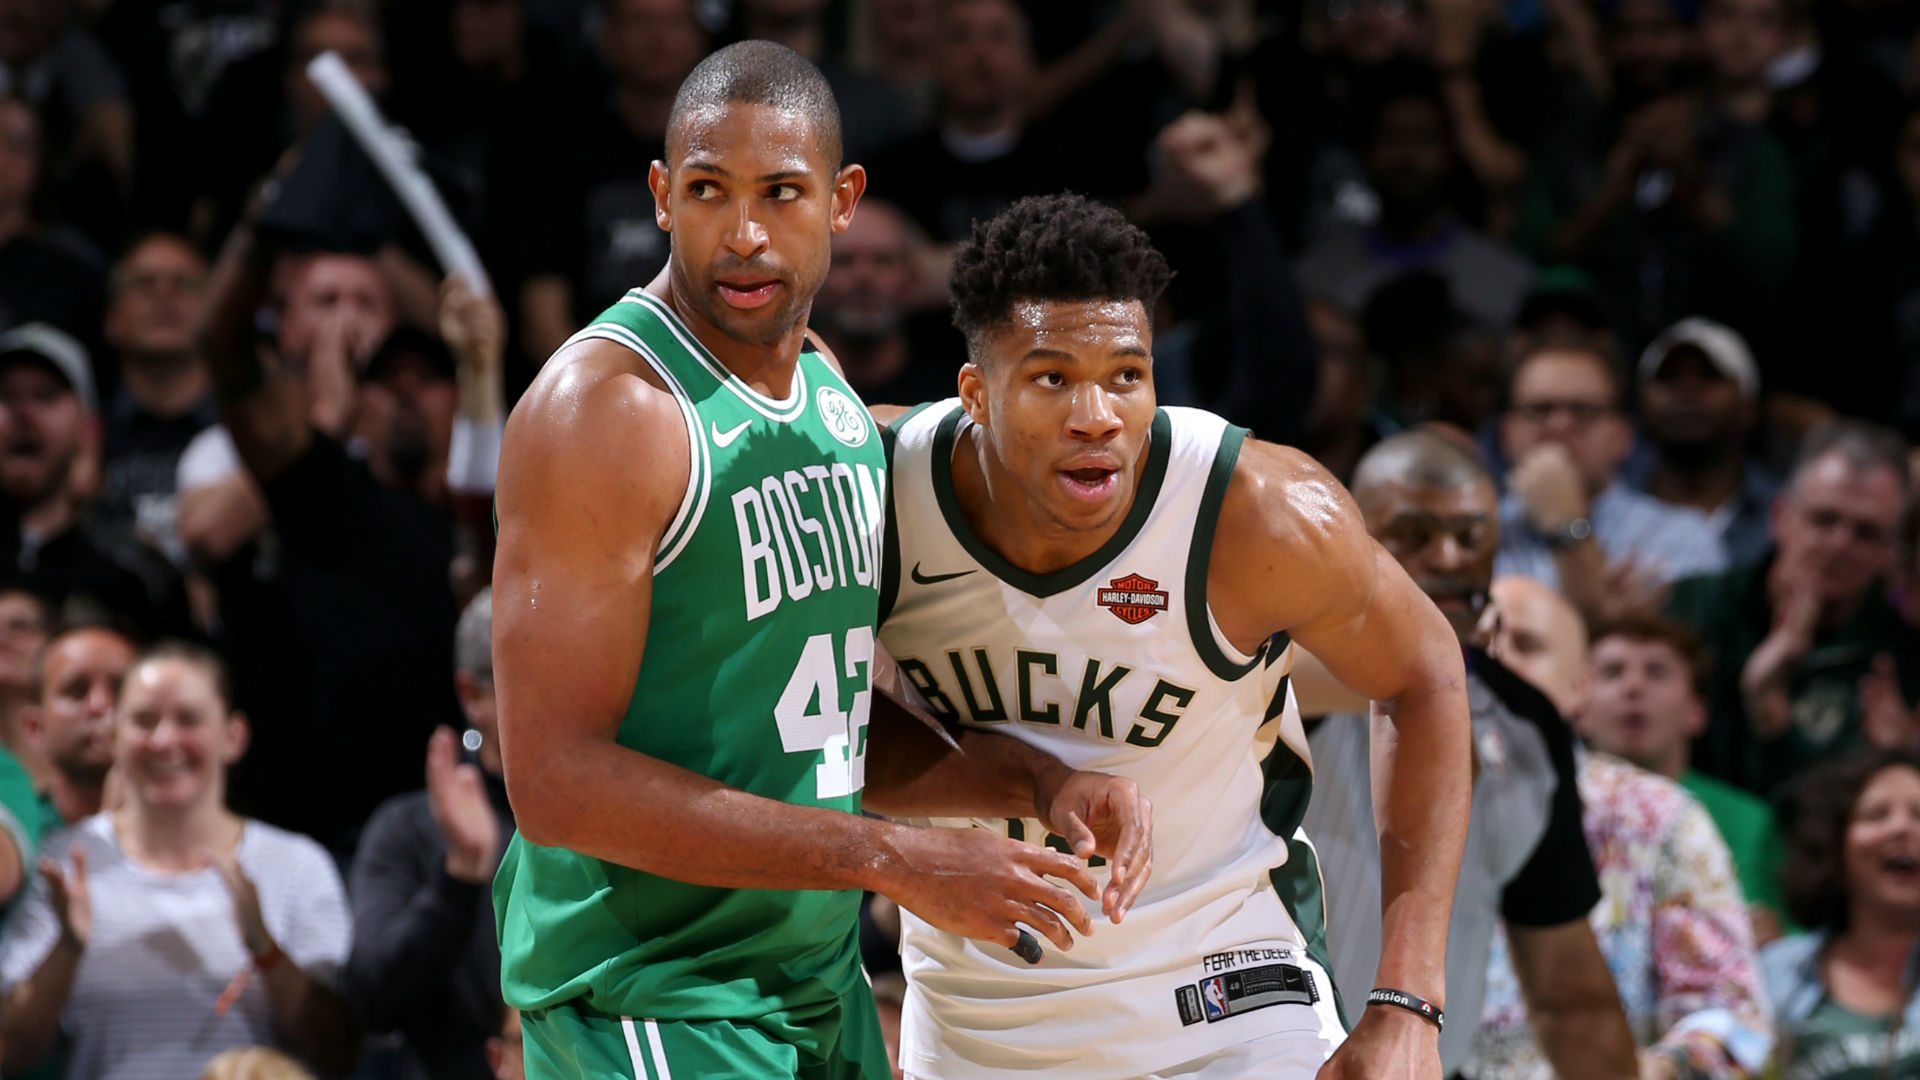 Nba Playoffs 2019 Live Updates From Game 1 Of Bucks